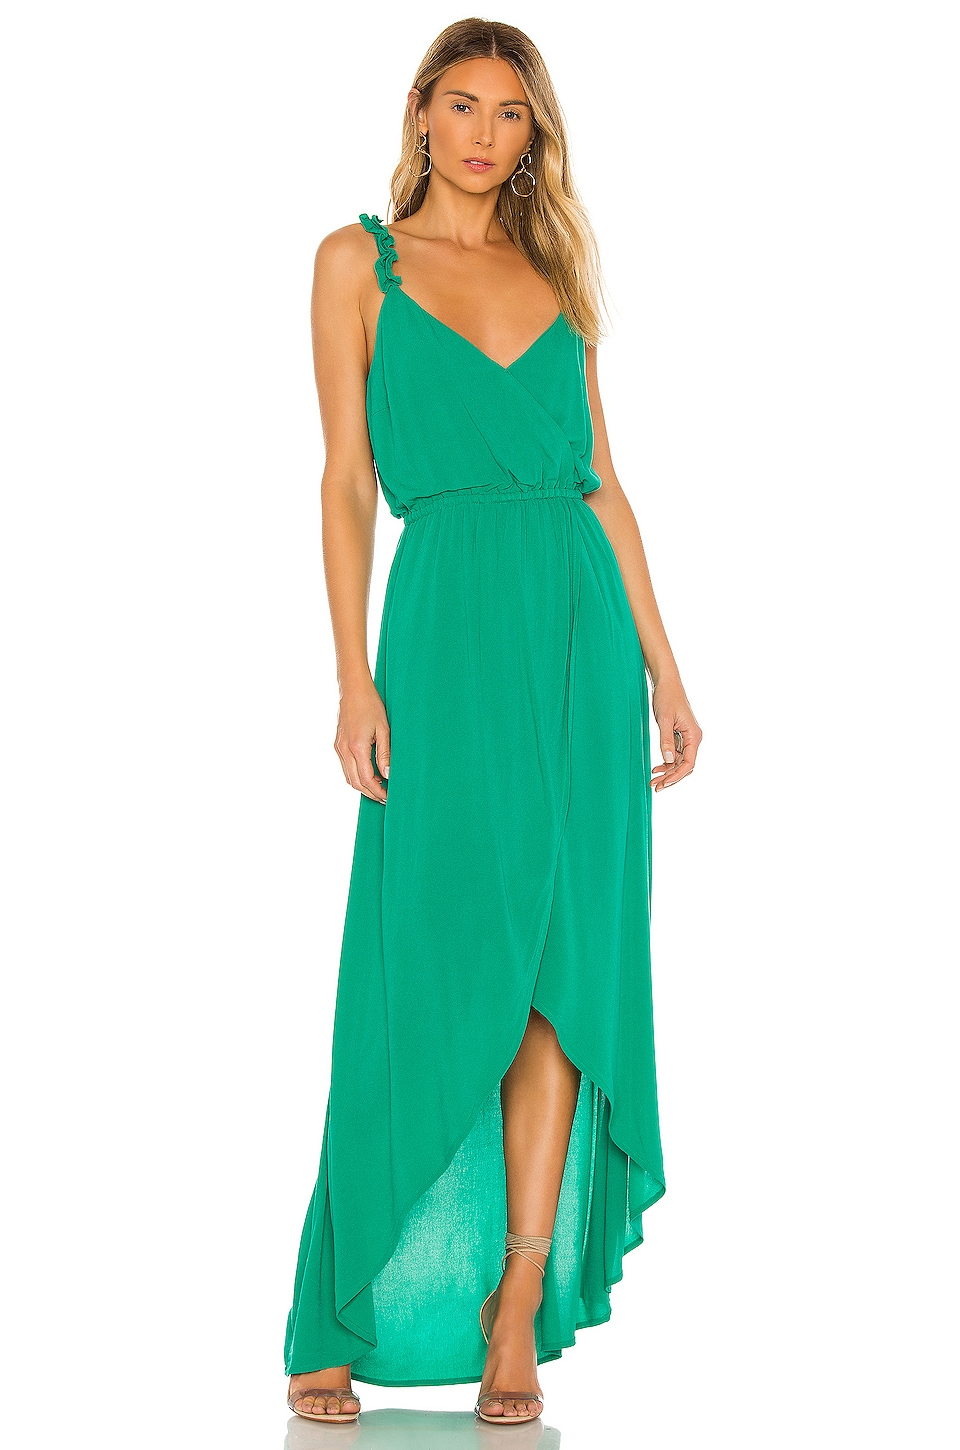 JACK by BB Dakota Ruffle & Cut Midi Dress             BB Dakota                                                                                                       CA$ 124.98 11